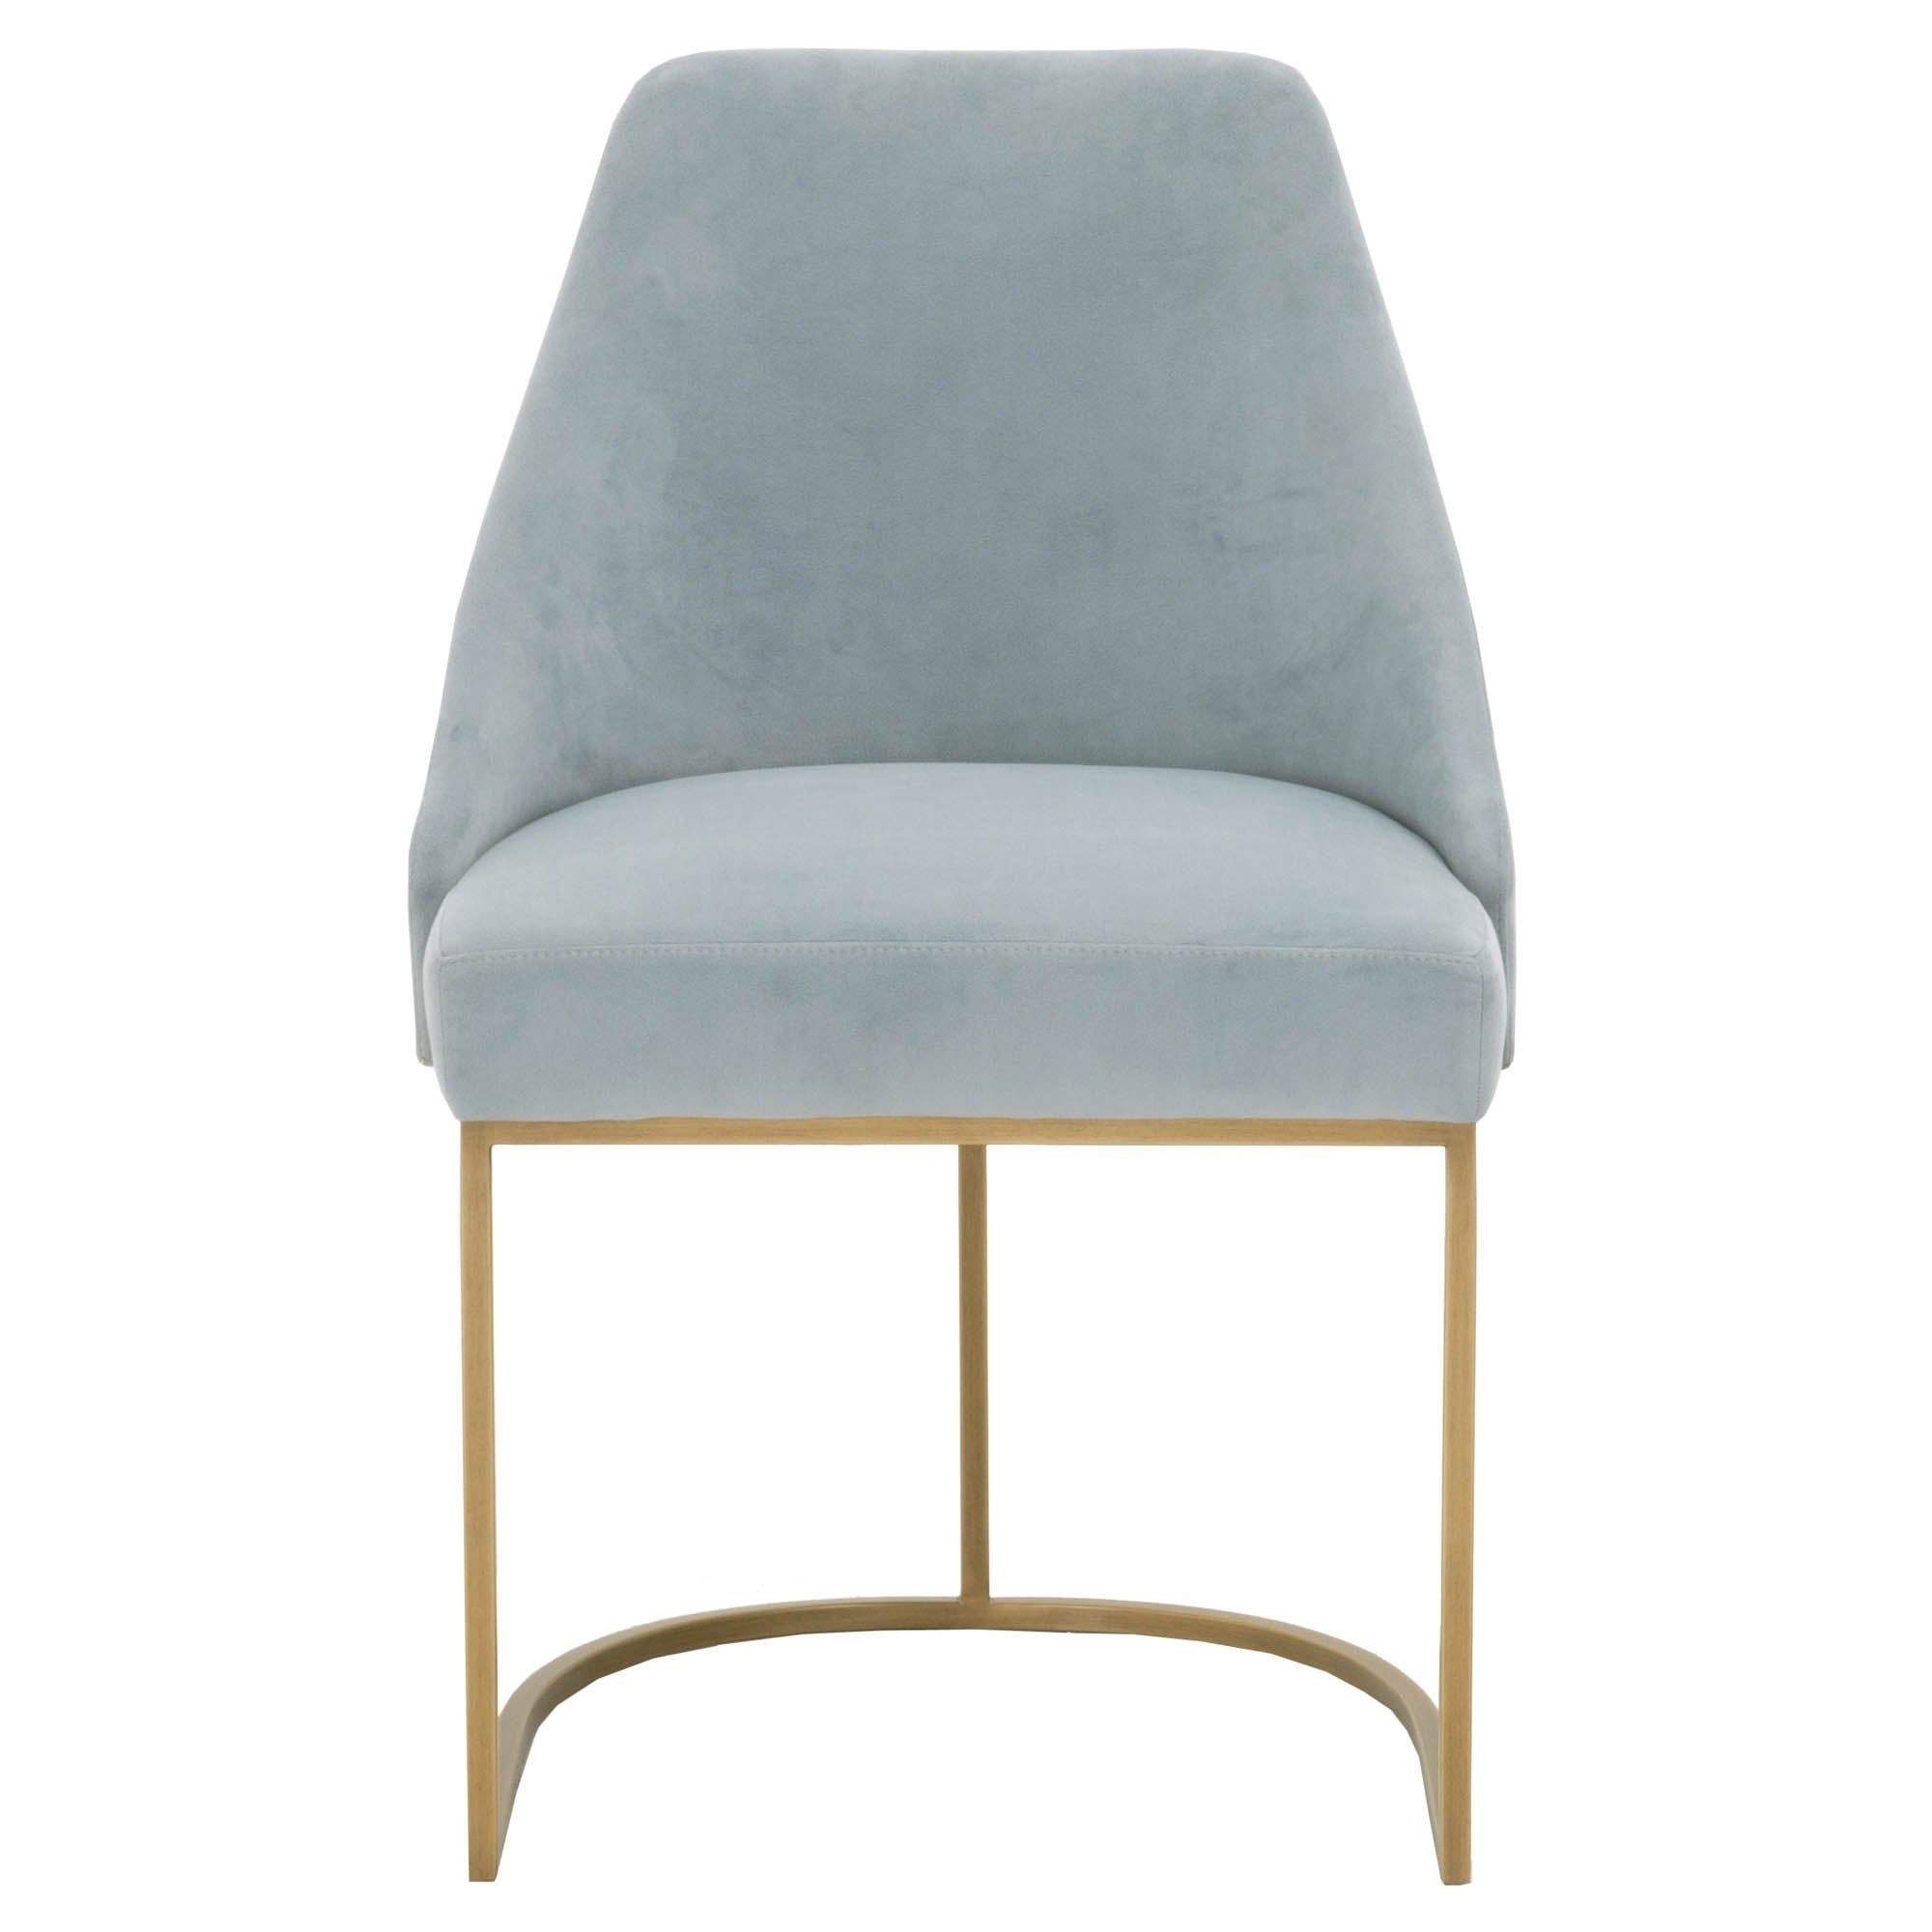 Overstock Com Online Shopping Bedding Furniture Electronics Jewelry Clothing More Side Chairs Dining Upholstered Dining Side Chair Dining Chair Set